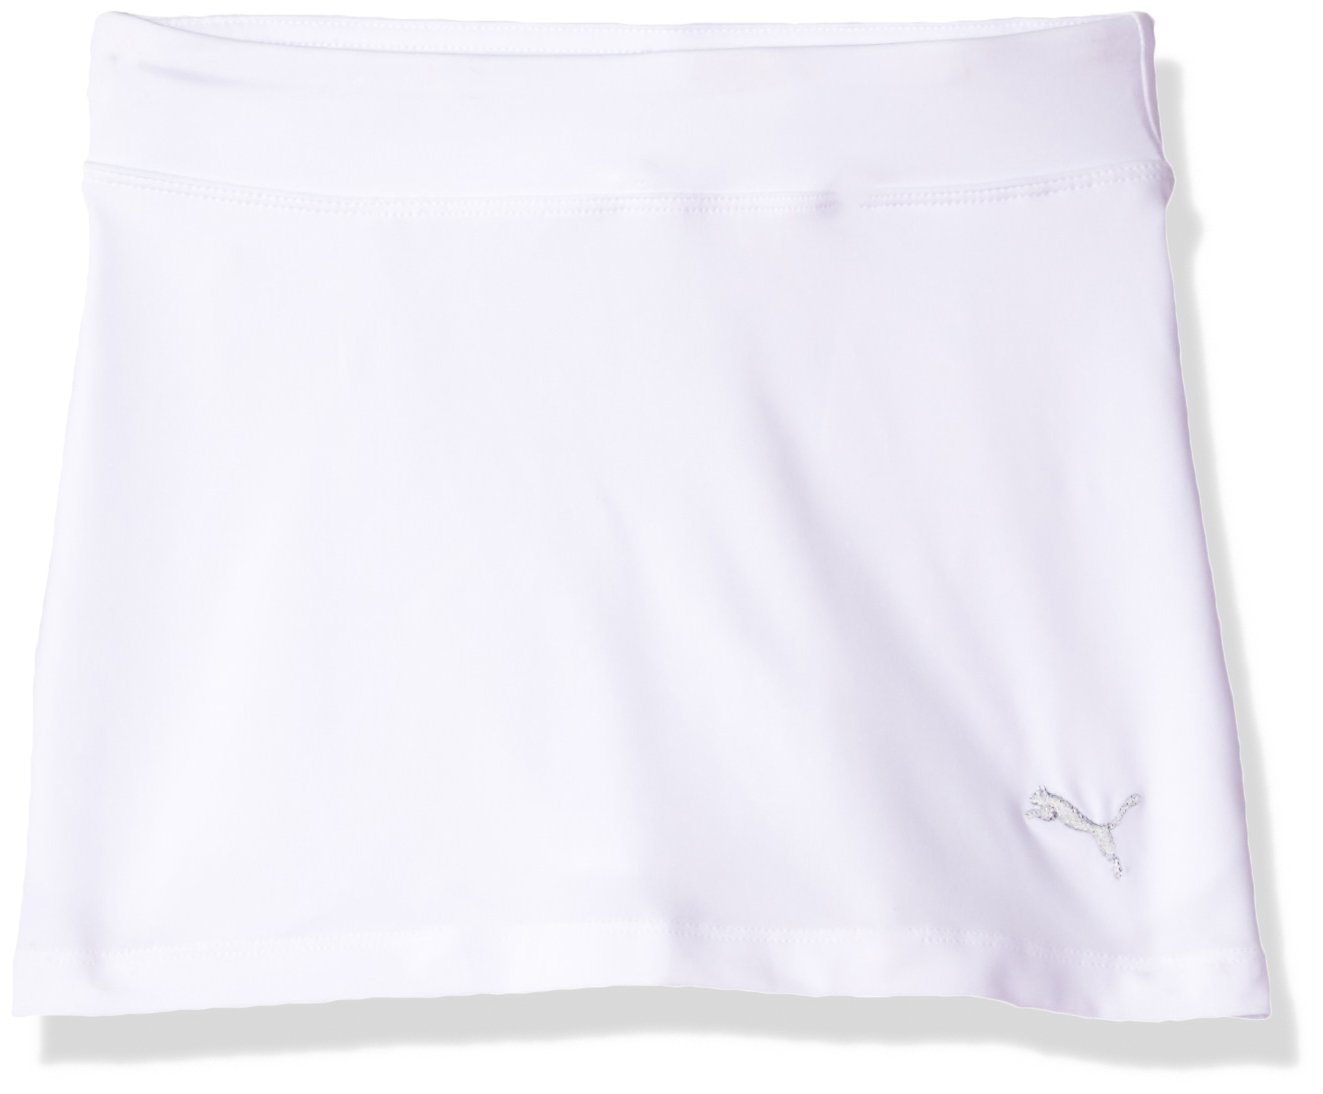 PUMA Golf 2017 Girl's Solid Knit Skirt, Bright White, X-Large by PUMA